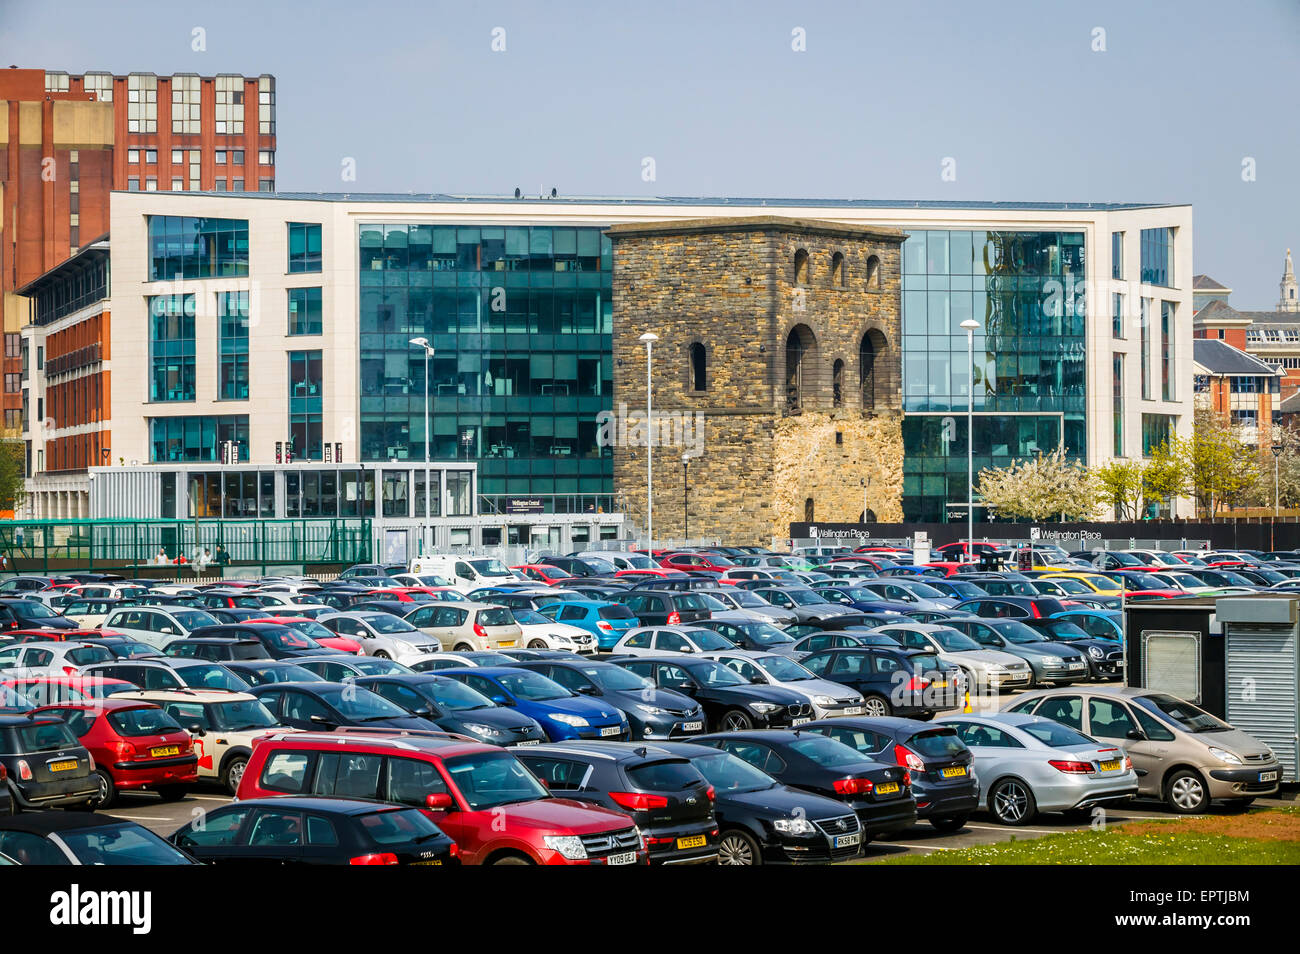 Car Park Over Looking Central Station Wagon Hoist Leeds Wellington Place West Yorkshire, The Contrast of New and - Stock Image